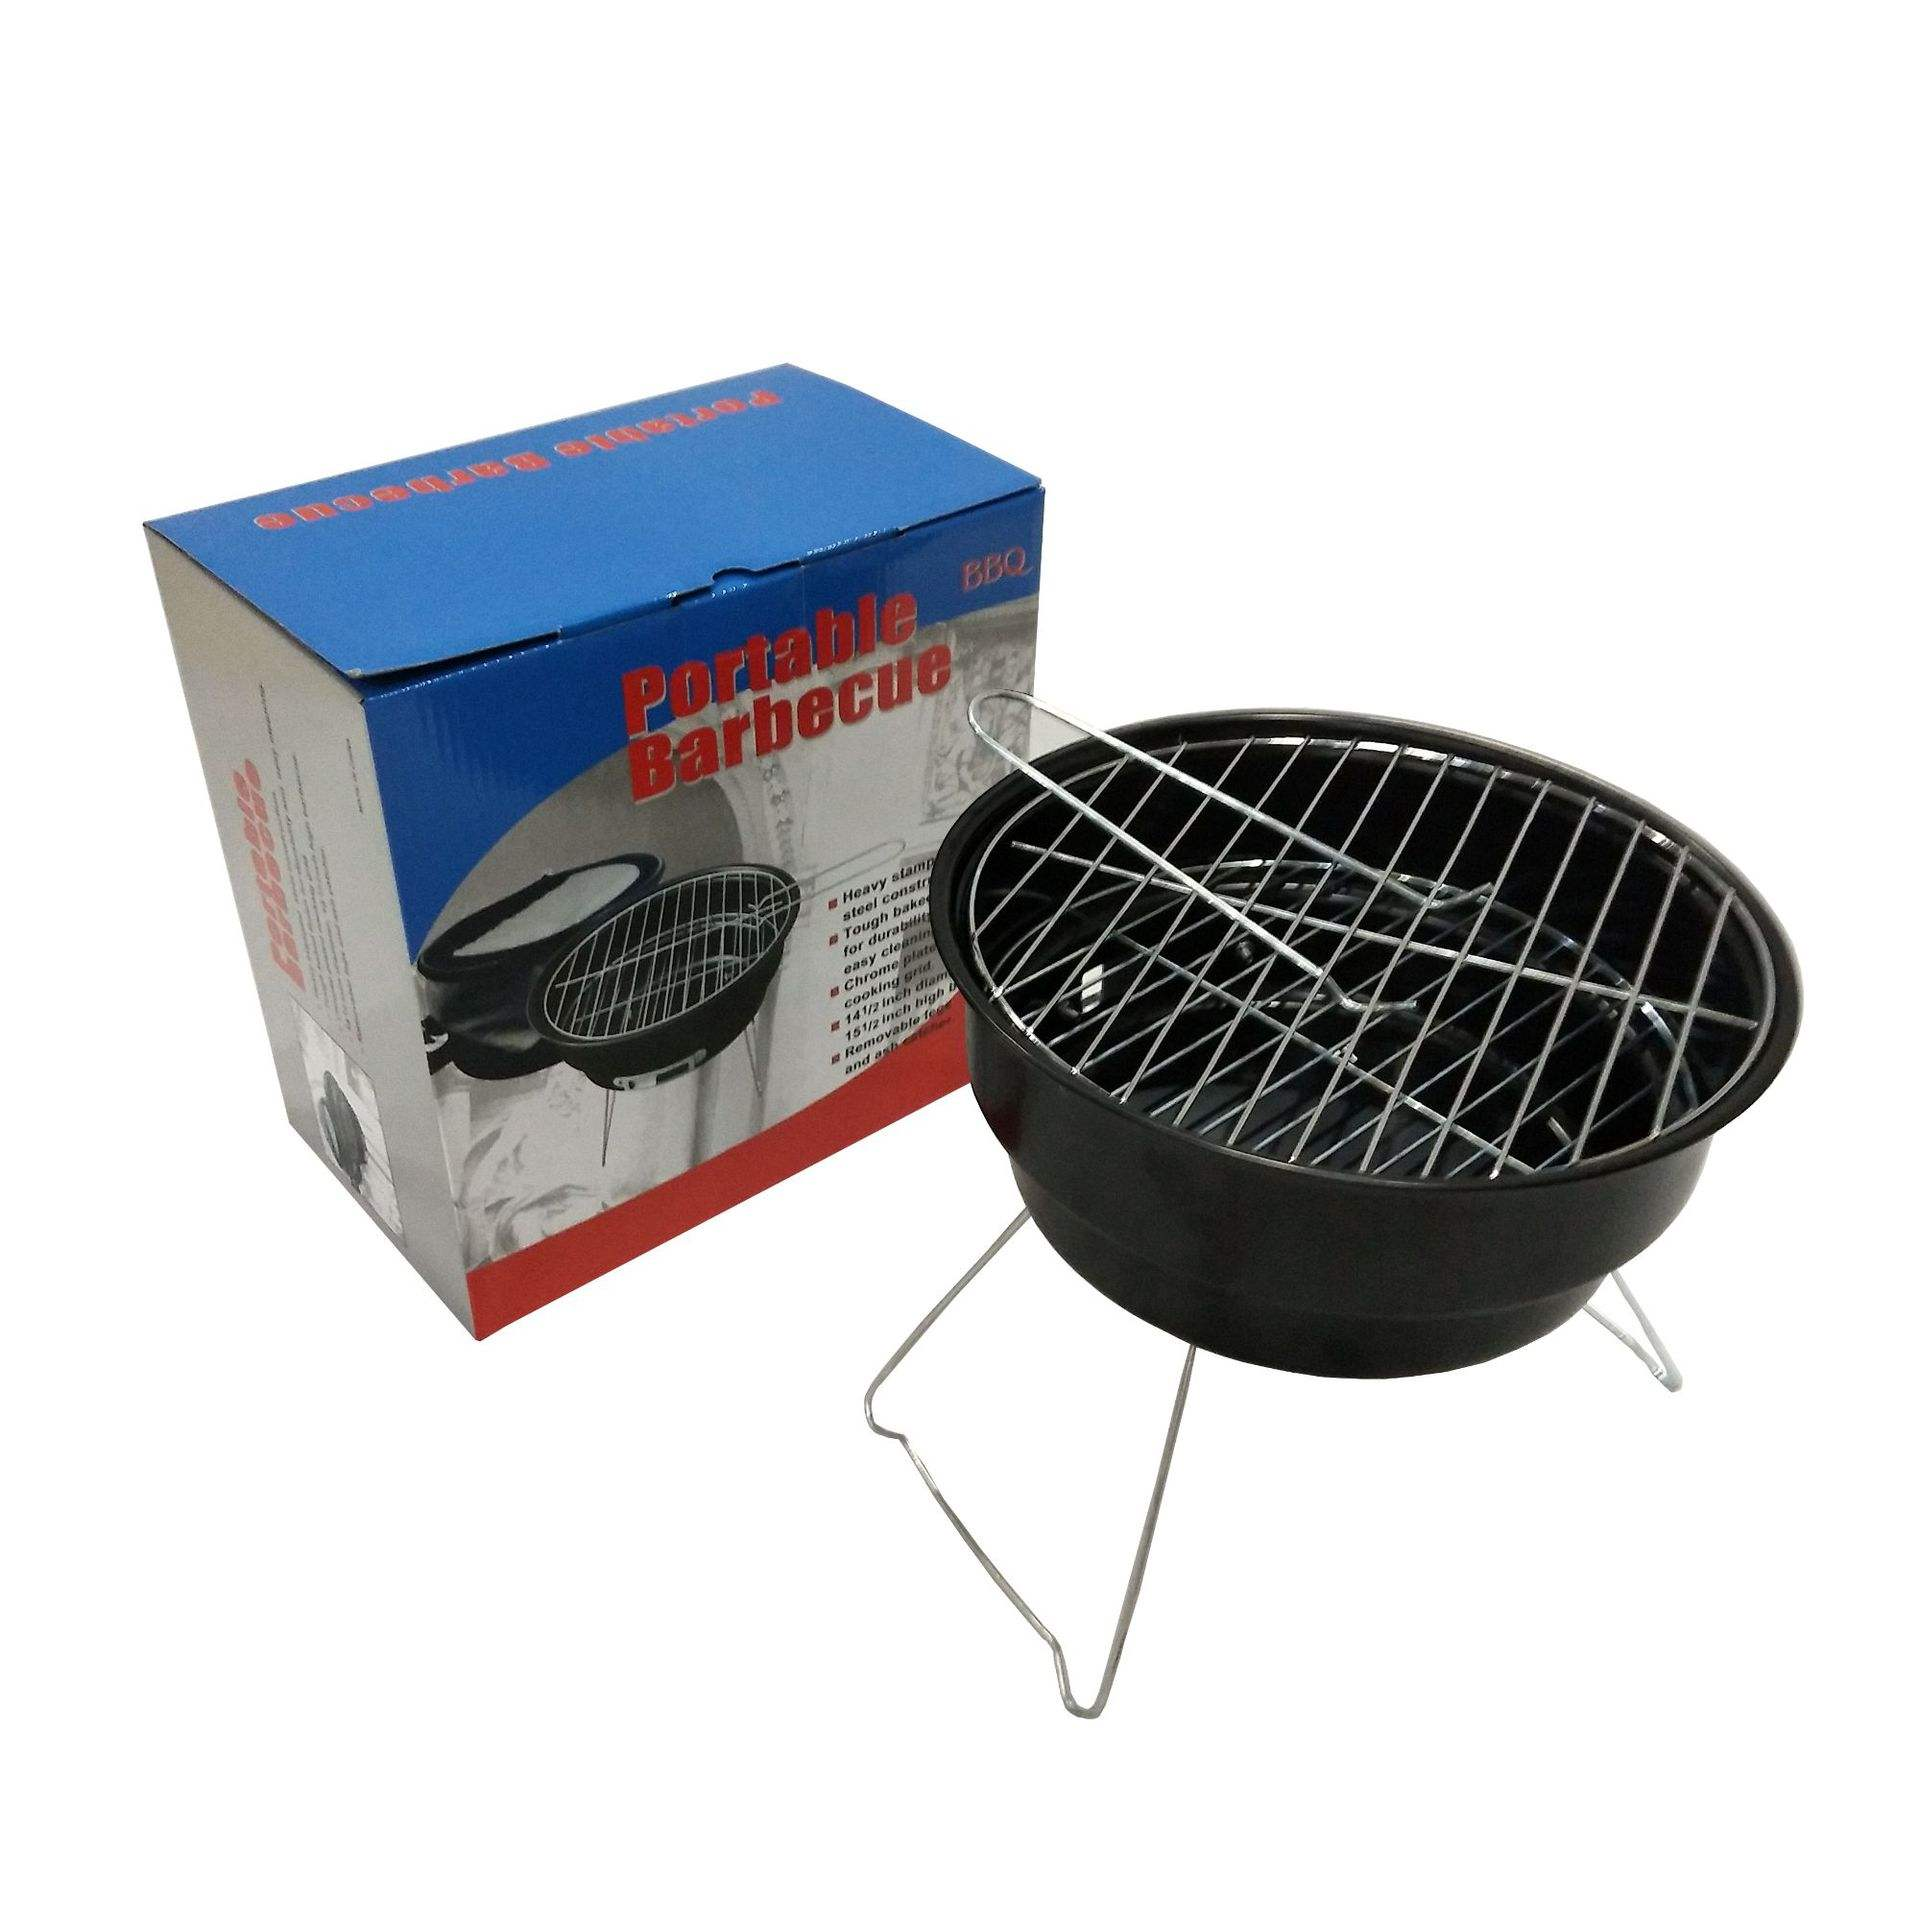 Wholesale garden Portable smokeless BBQ charcoal grill foldable barbecue grill machine, bbq grill light